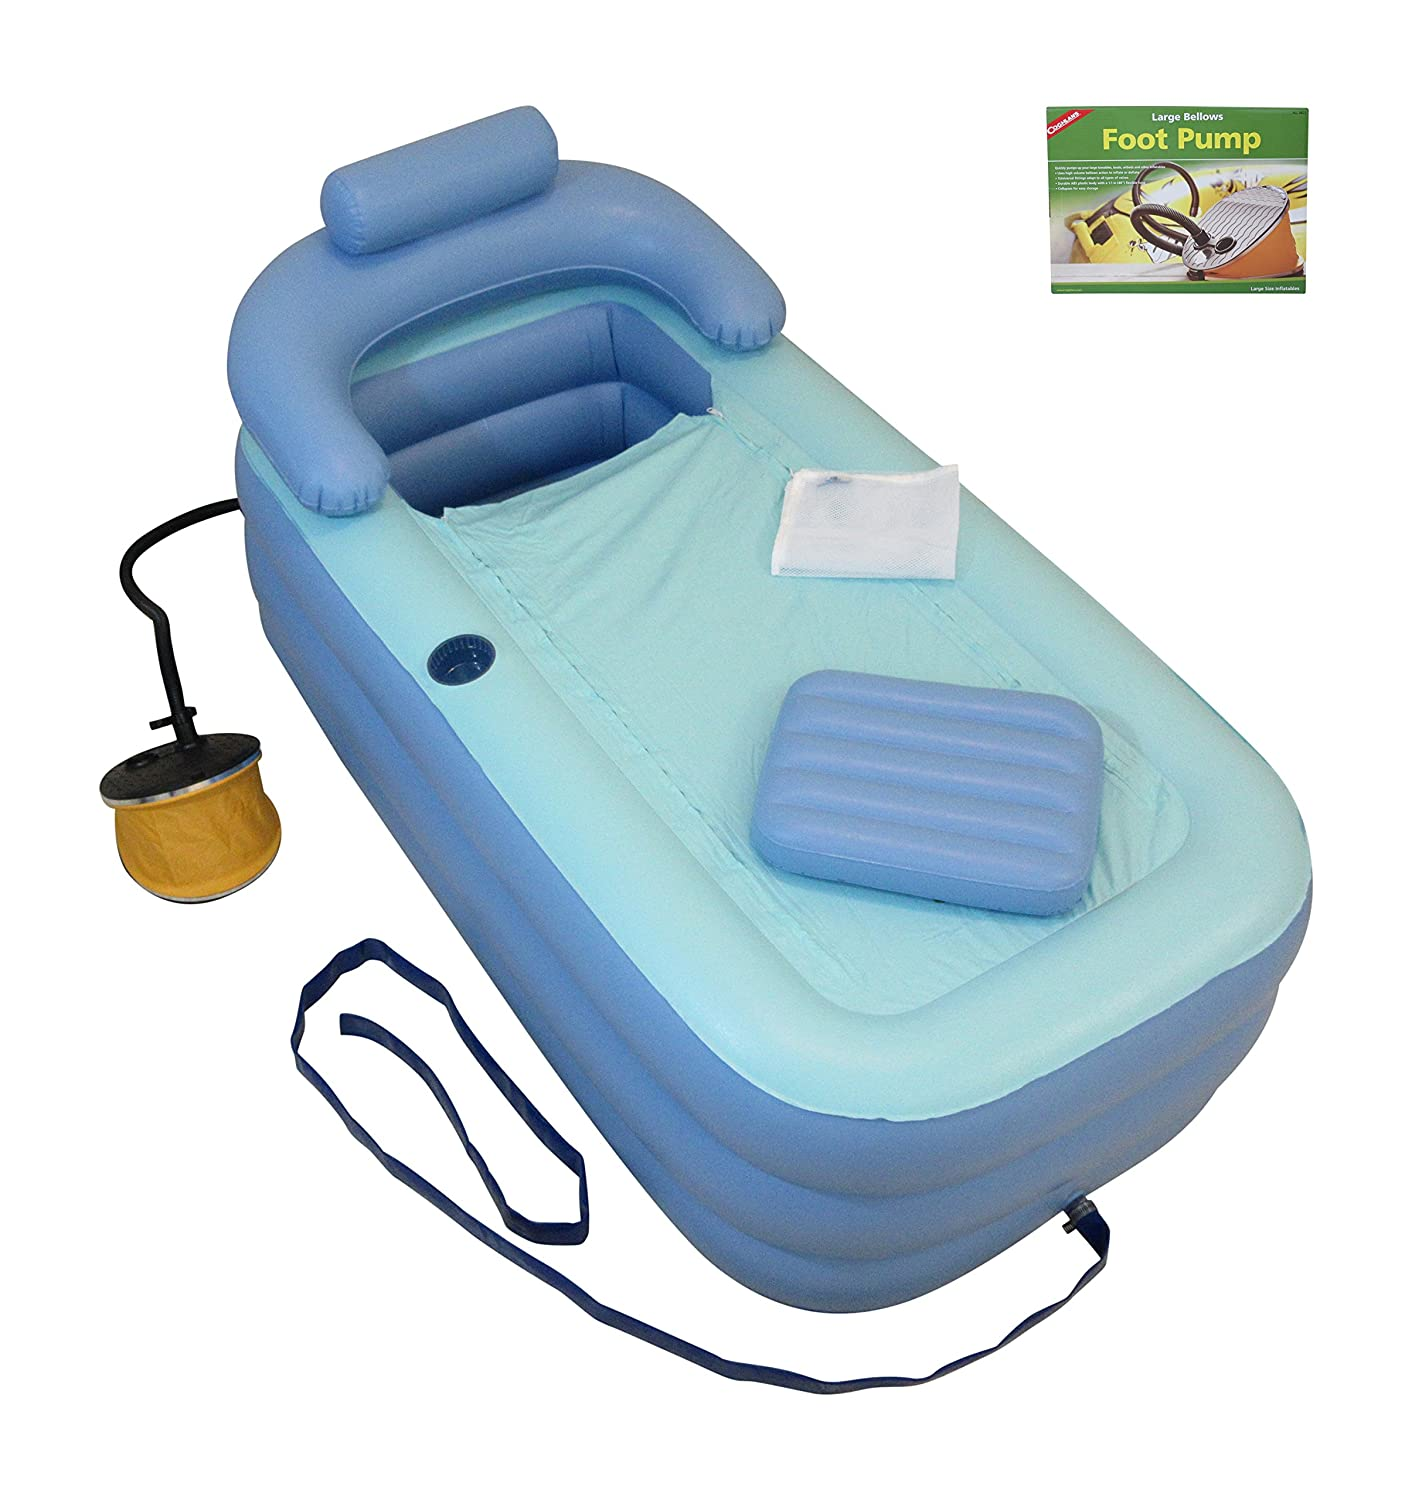 Amazon.com: Inflatable Bath Tub Adult - Bathtub Upgraded Pump X-long ...